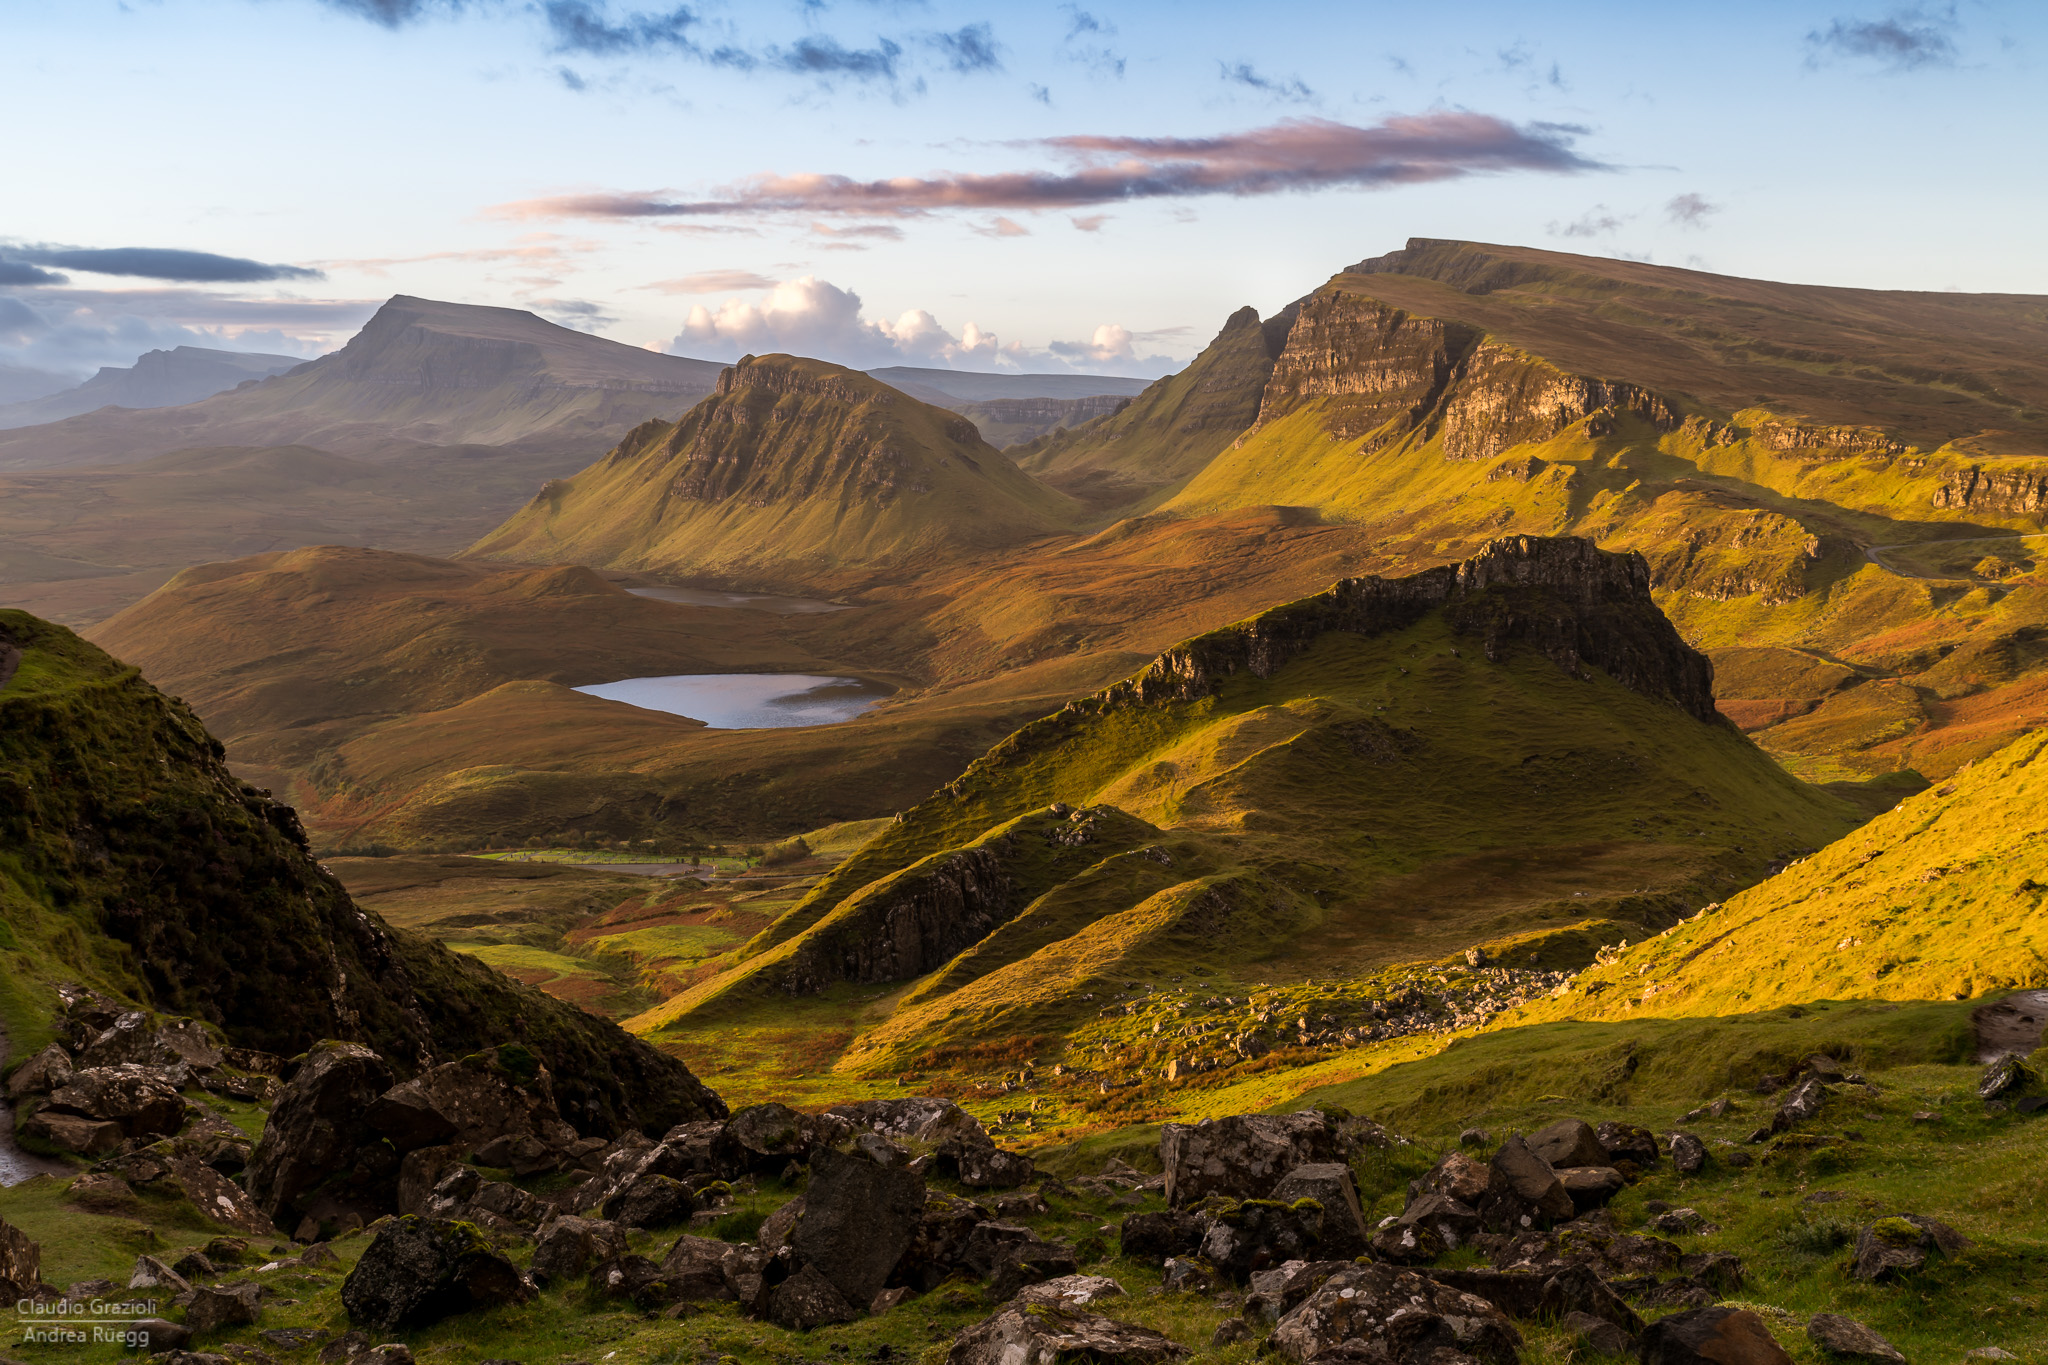 Early Morning at the Quiraing